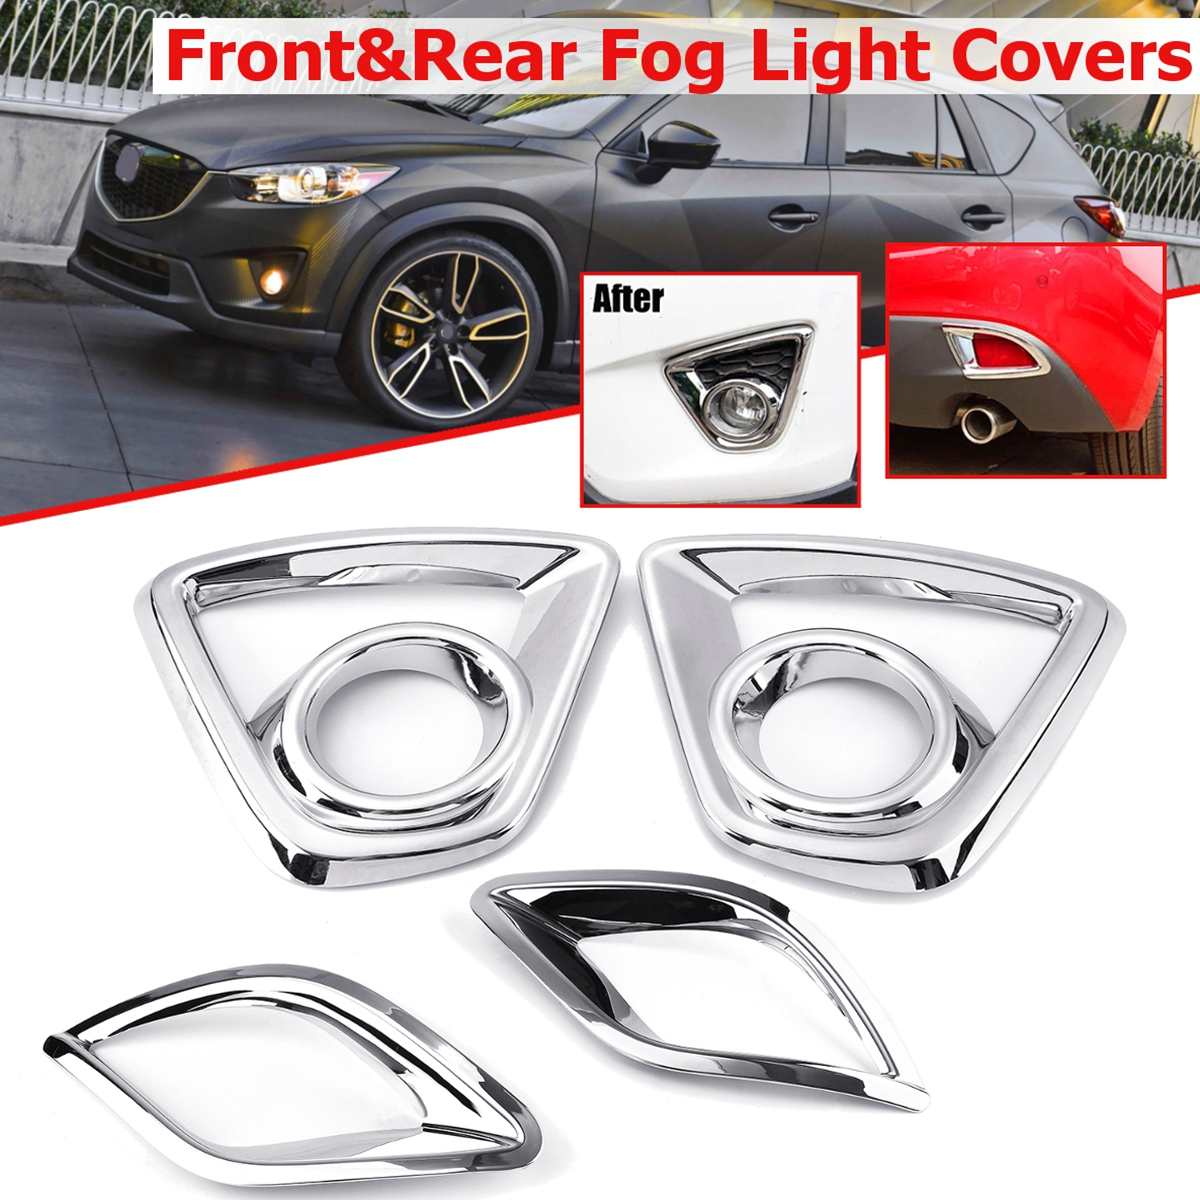 Bumper Fog light Chrome Garnish For <font><b>Mazda</b></font> <font><b>Cx</b></font>-<font><b>5</b></font> Cx5 2013 2014 <font><b>2015</b></font> <font><b>2016</b></font> Car Rear Tail Lights Lamp Shade Frame Trim Cover Styling image